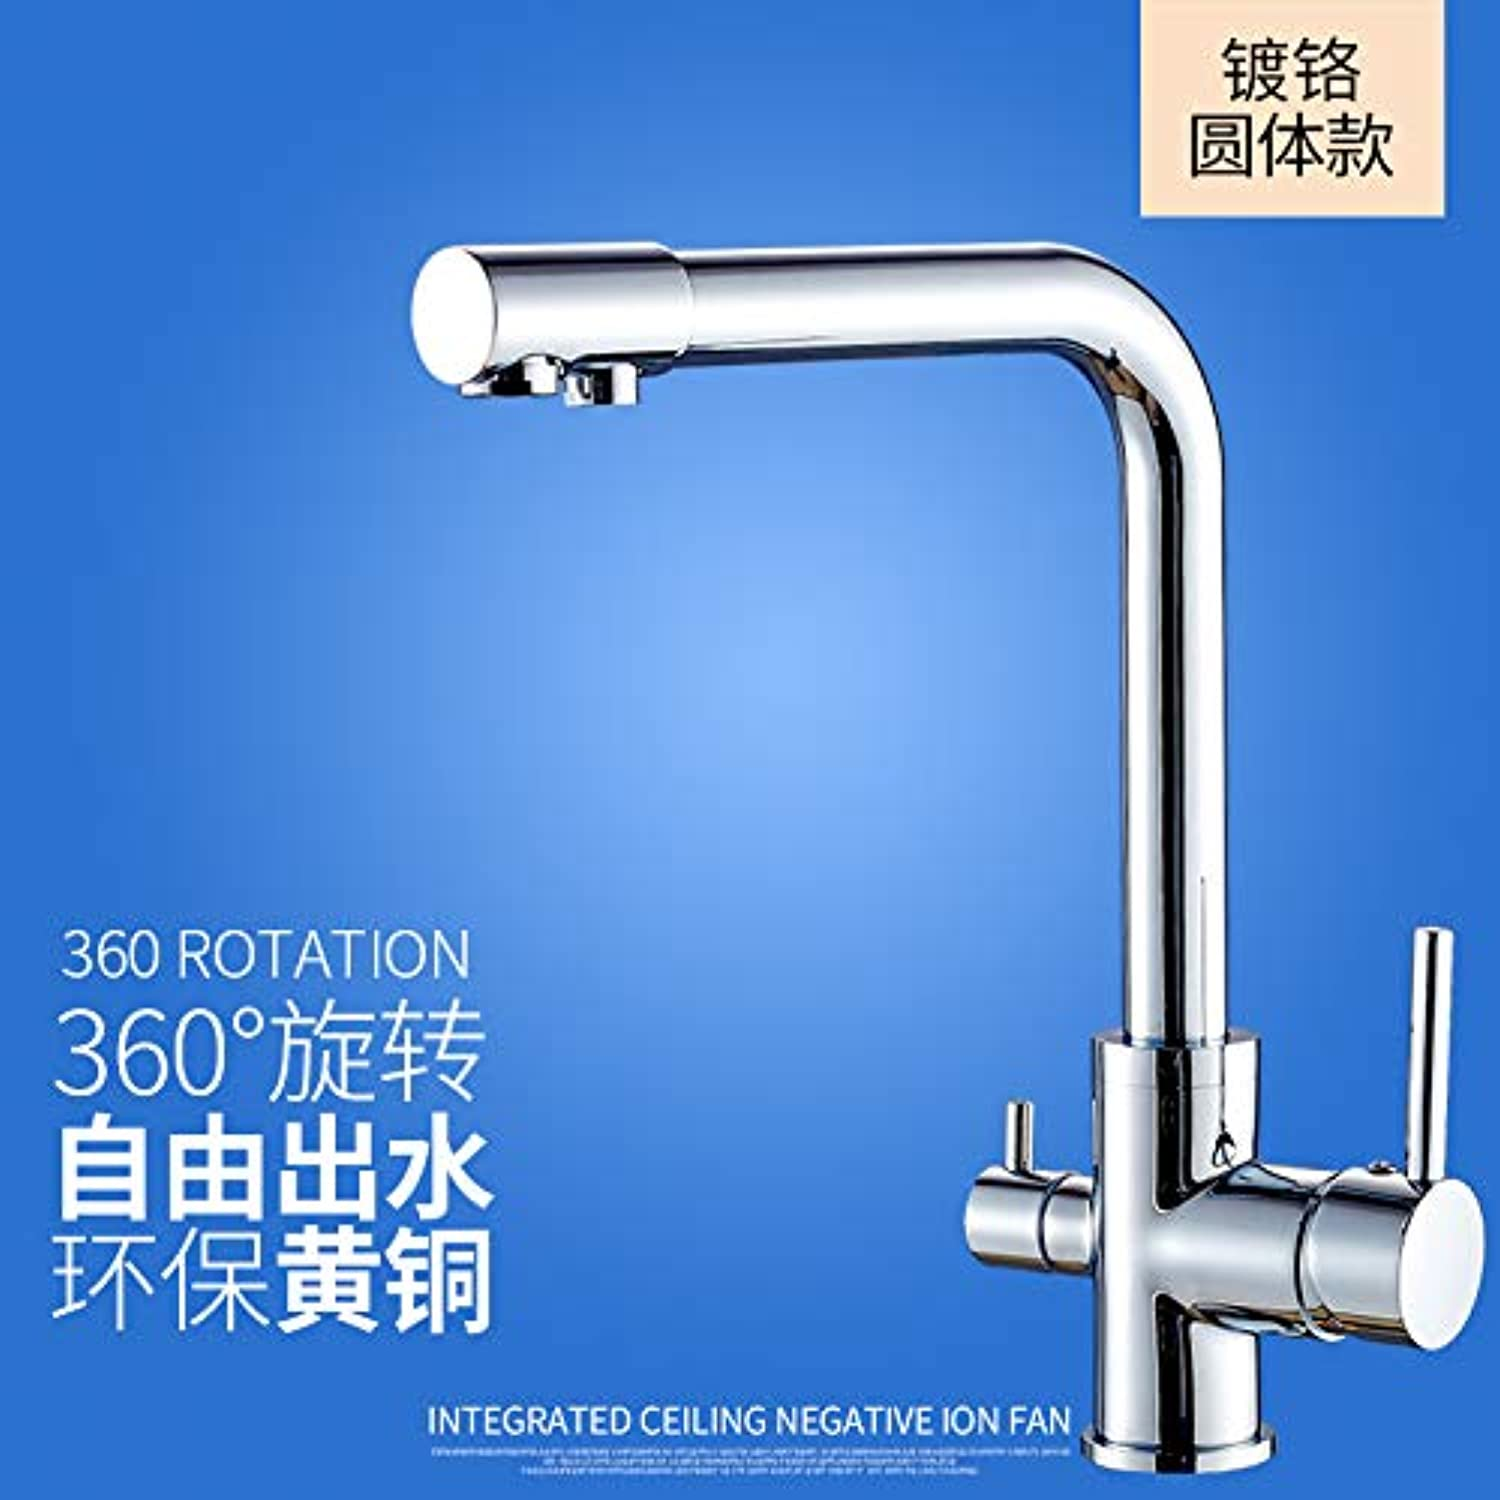 Hlluya Professional Sink Mixer Tap Kitchen Faucet The tap water is full of copper kitchen faucet until water dish washing basin sink with hot and cold 3, full copper round body - Chrome